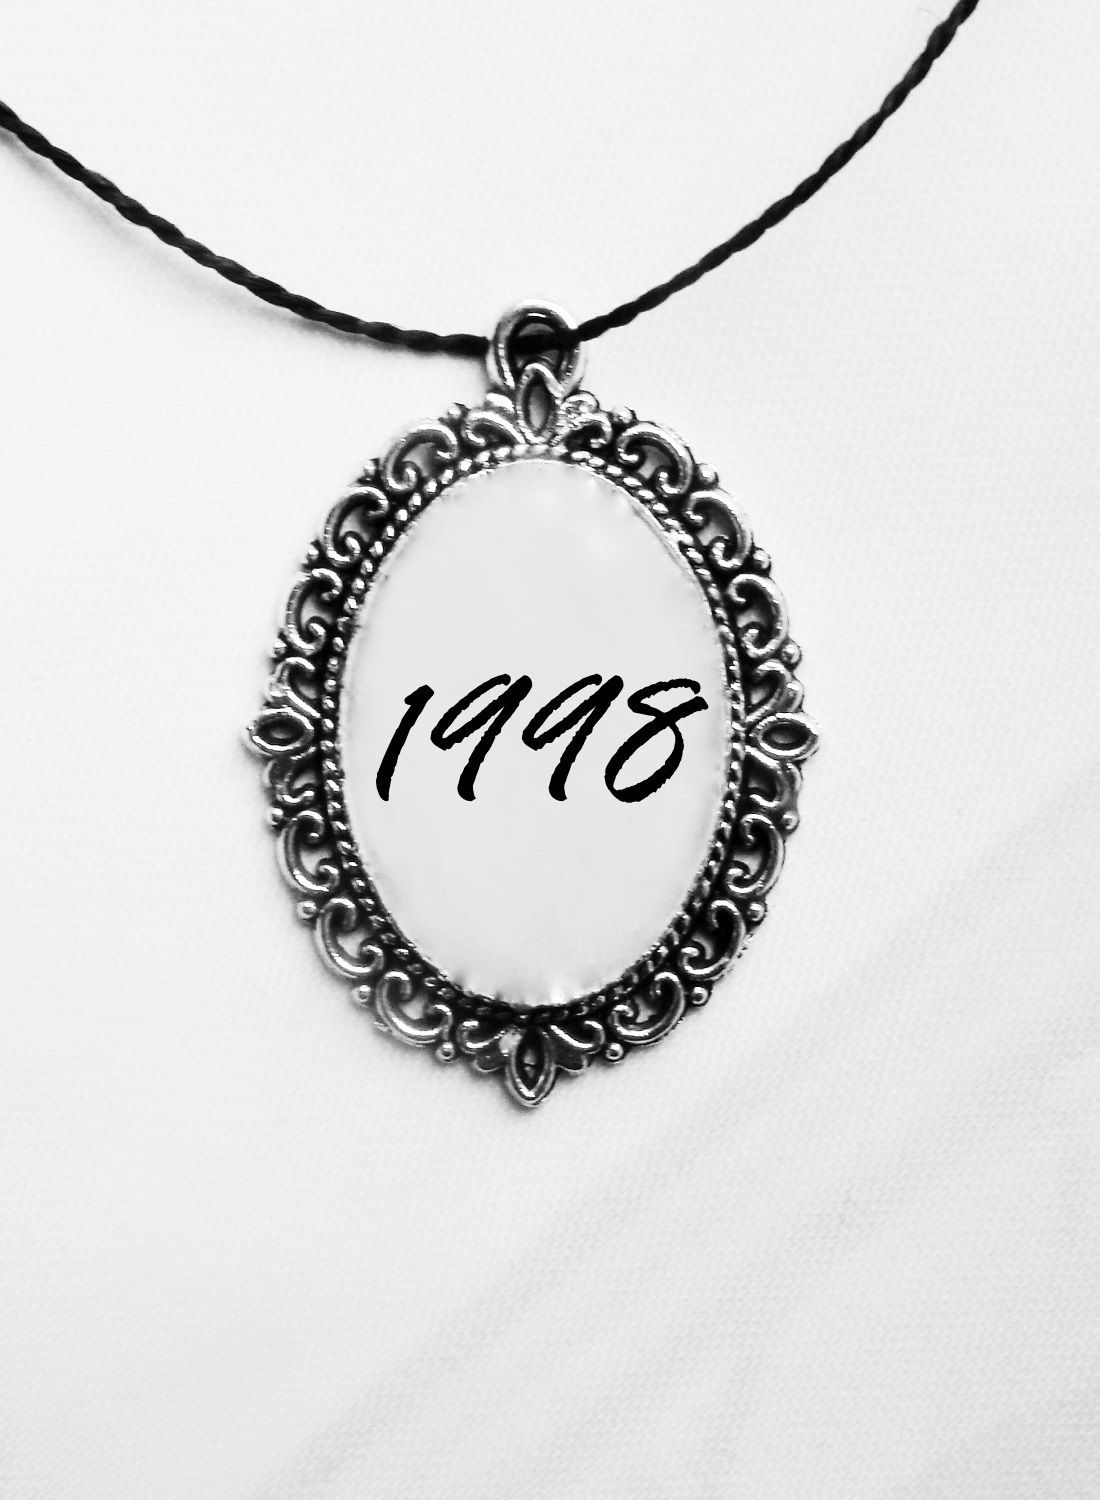 1998 Custom message gift Birthday necklace 1998 Custom message gift Birthday necklace OlaNoche OlaNocheUnderwear Pinterest MiniMall Viral Board Personalized text is print...